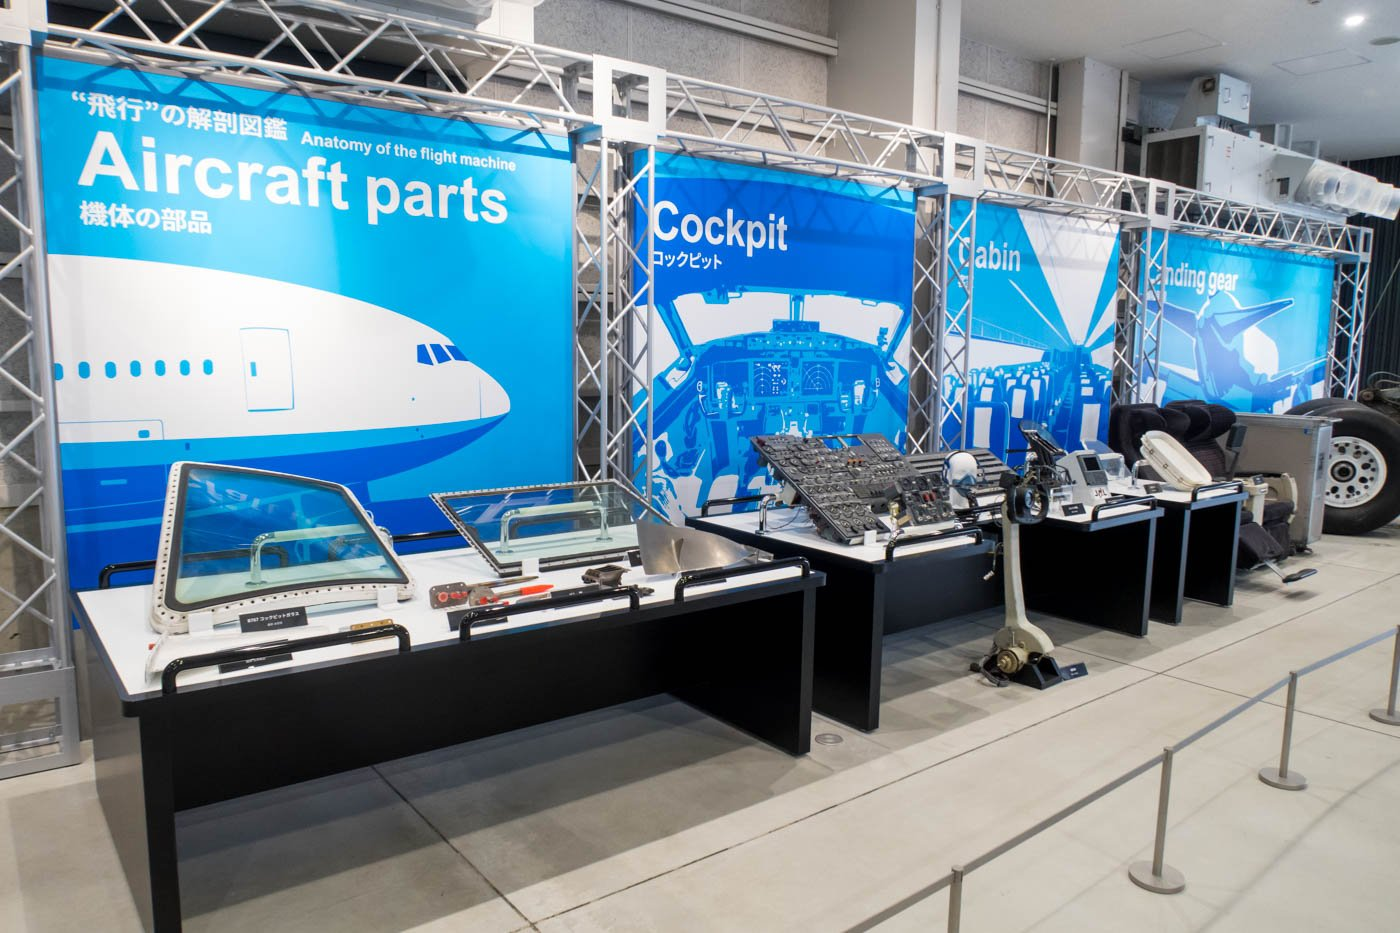 Aircraft Parts Exhibition